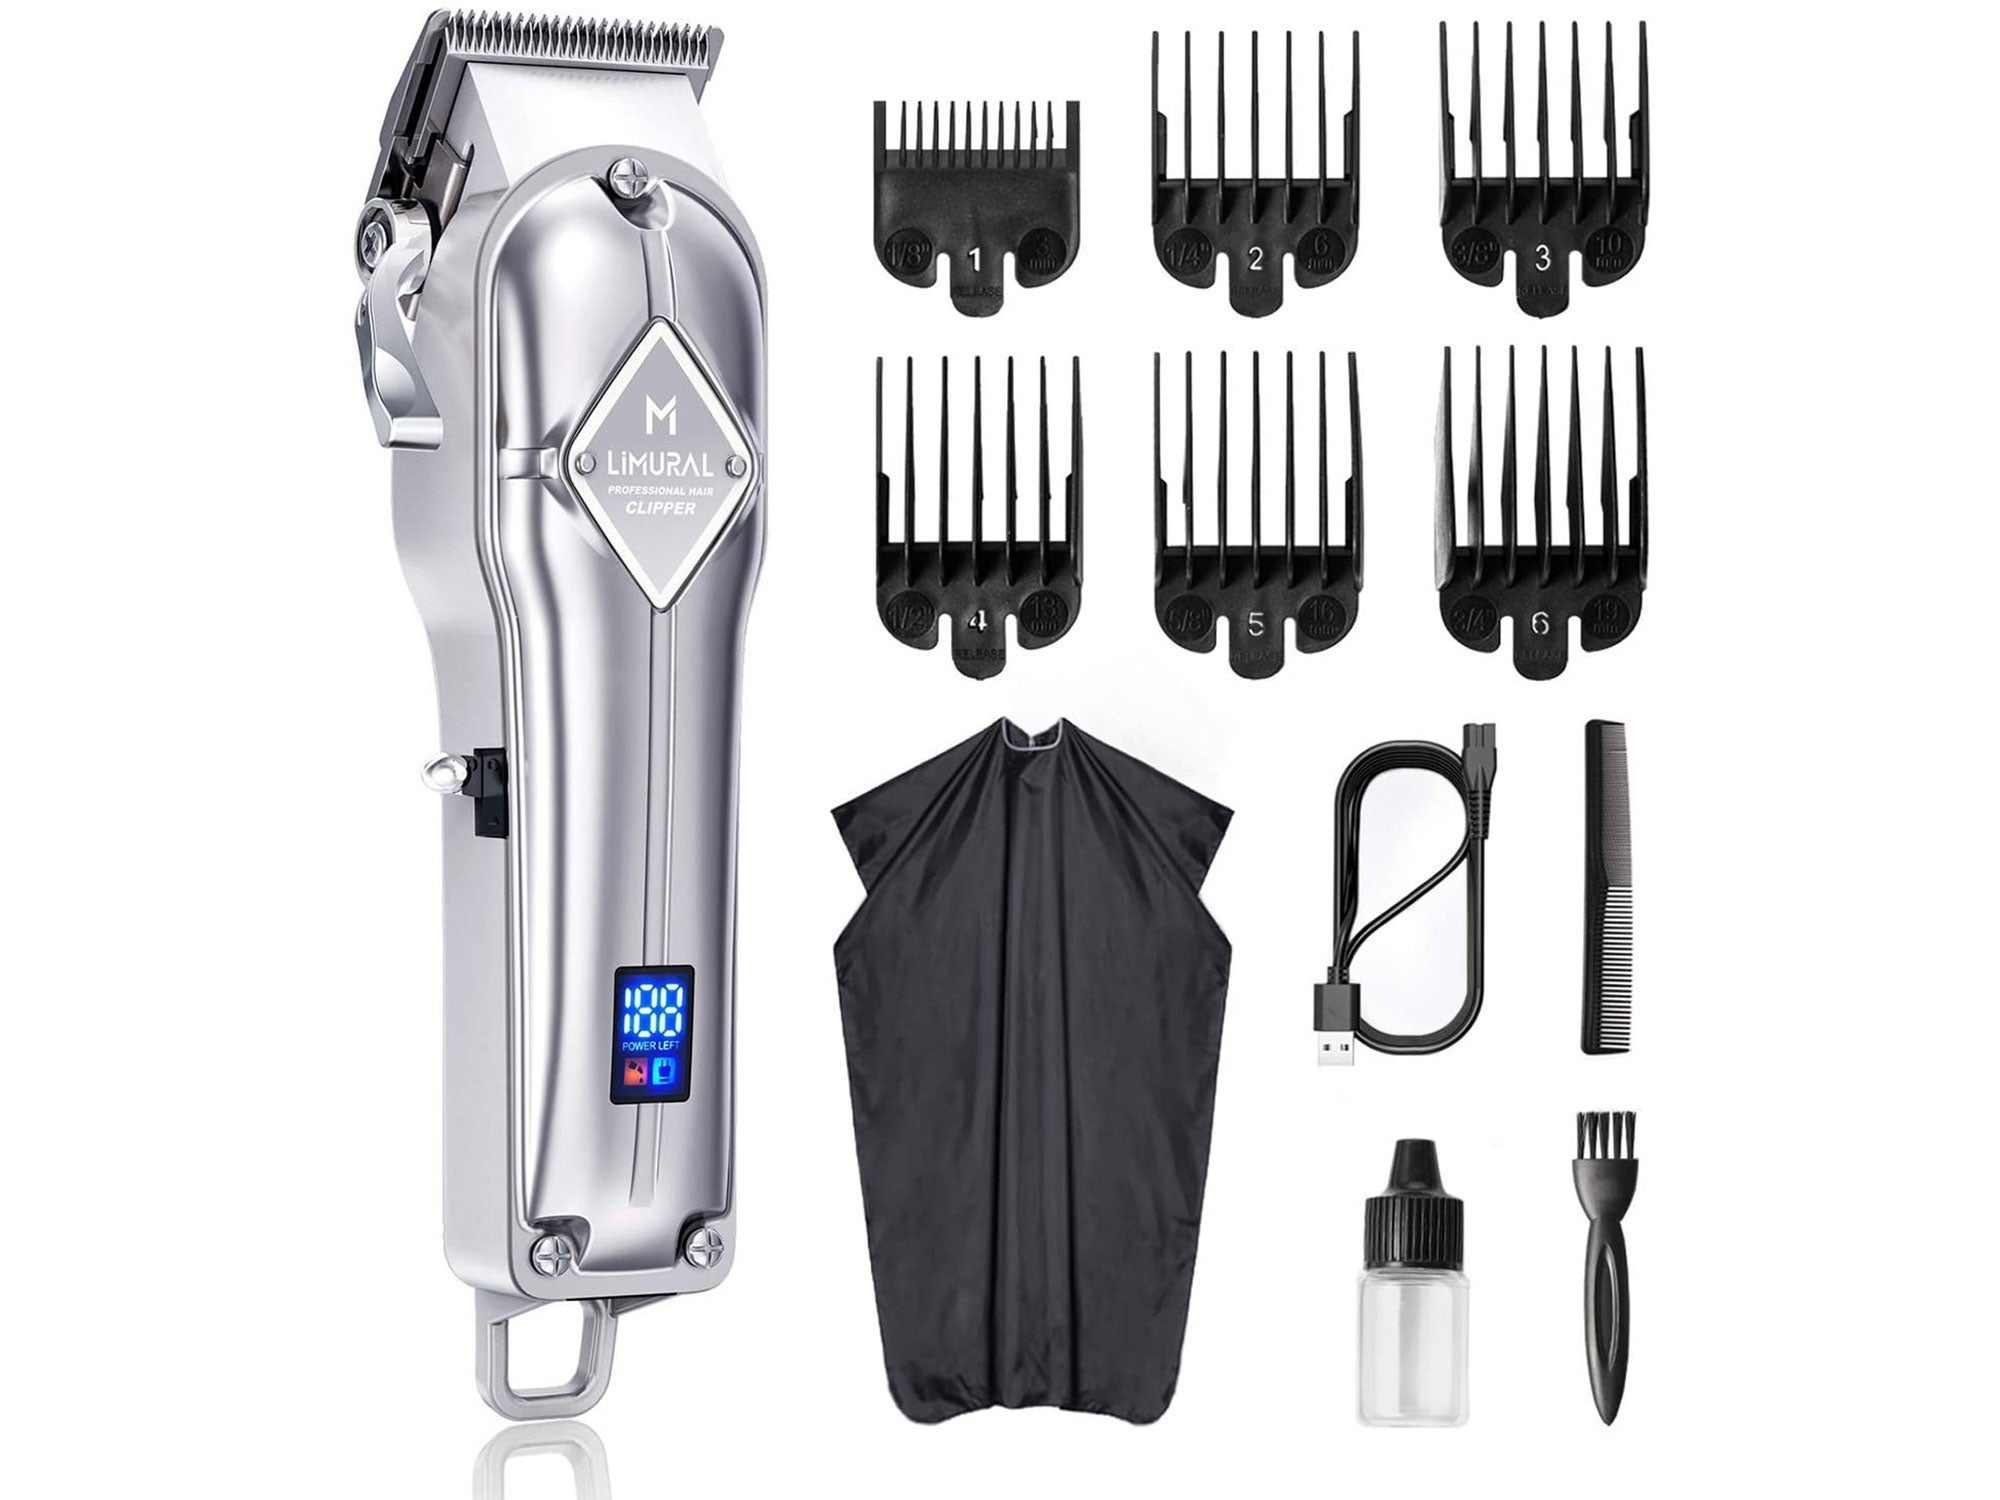 Limural Hair Clippers Men/Kids/Baby Professional Cordless Hair Clippers Beard Trimmer Mens Clipper Set Rechargeable for Family Cordless & Corded Grooming KitClipper and Body Groomer with AutoSensing Technology and 7 Attachments, Black/Blue, UK Two Pin Plug